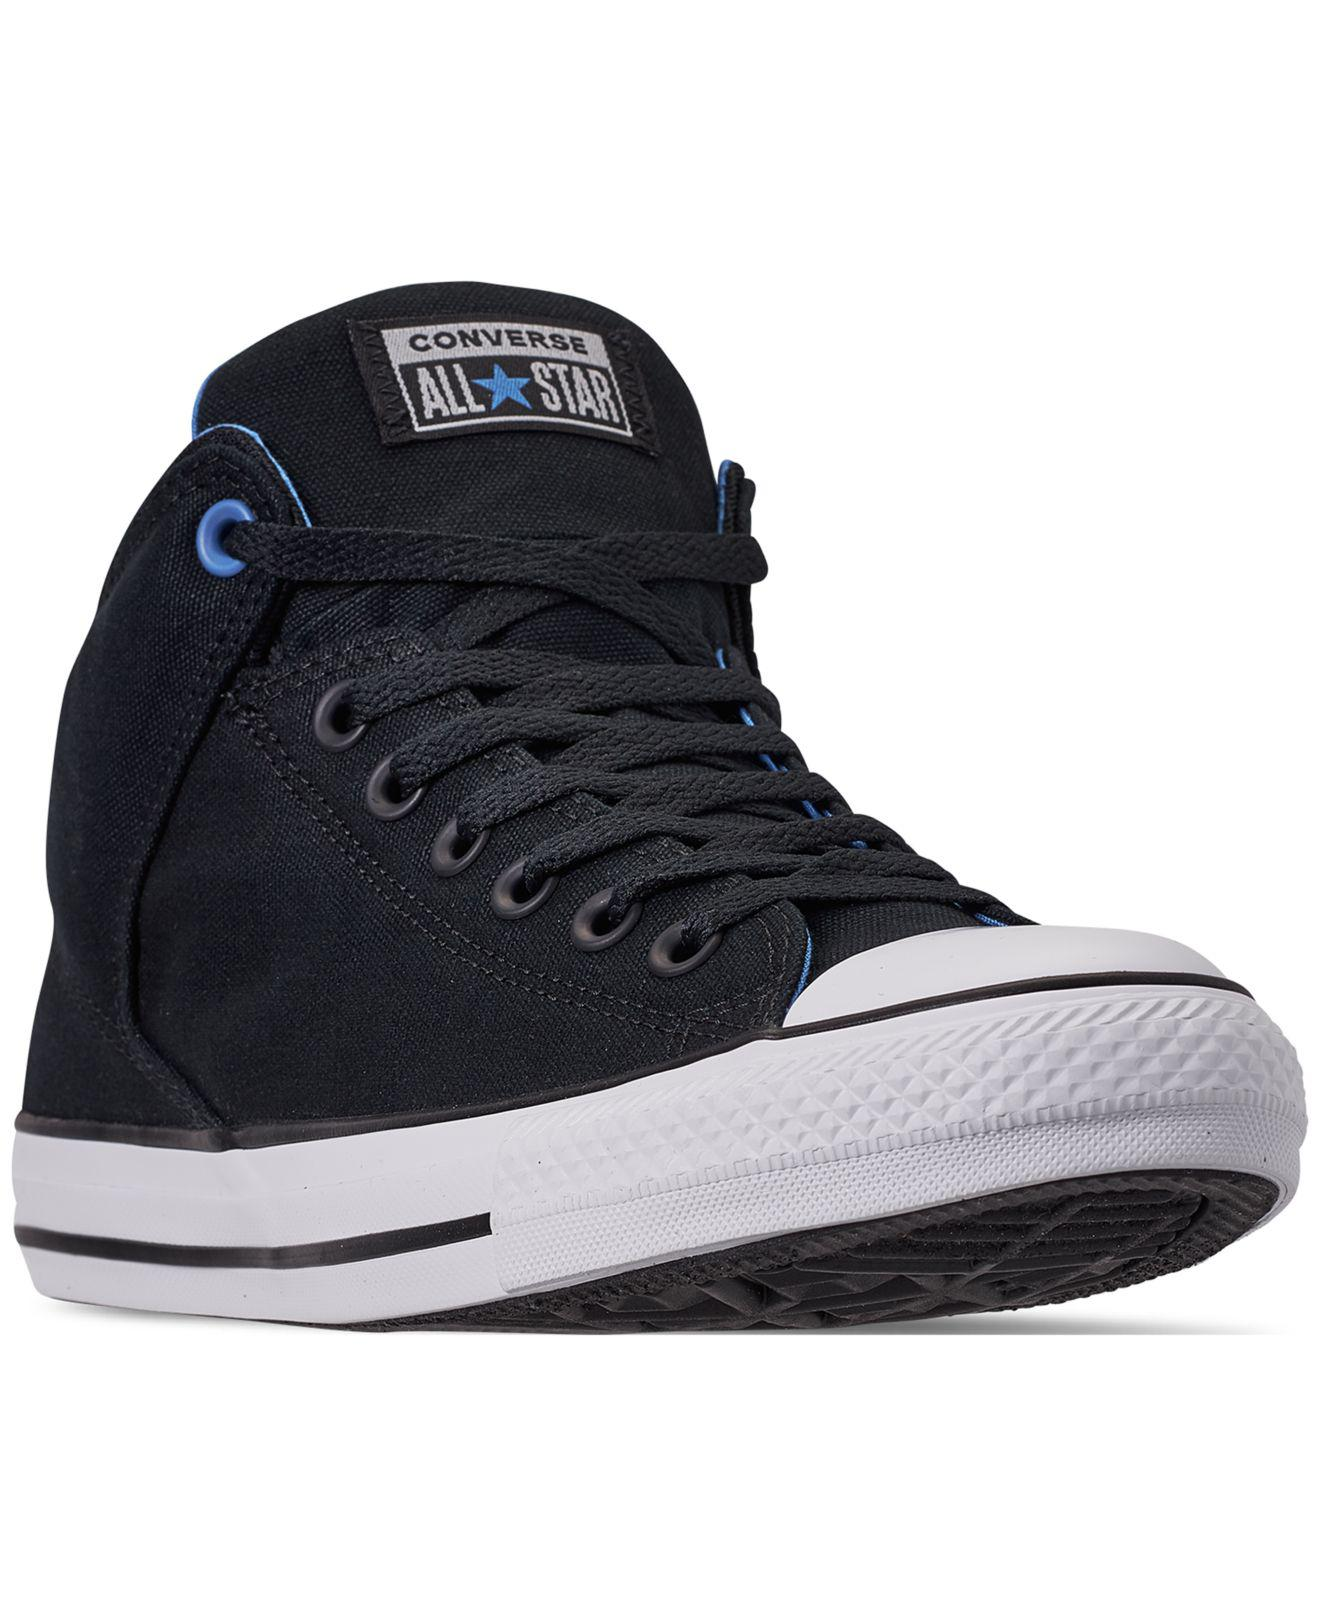 71a757d2532a Converse - Black Chuck Taylor All Star High Street Casual Sneakers From  Finish Line for Men. View fullscreen